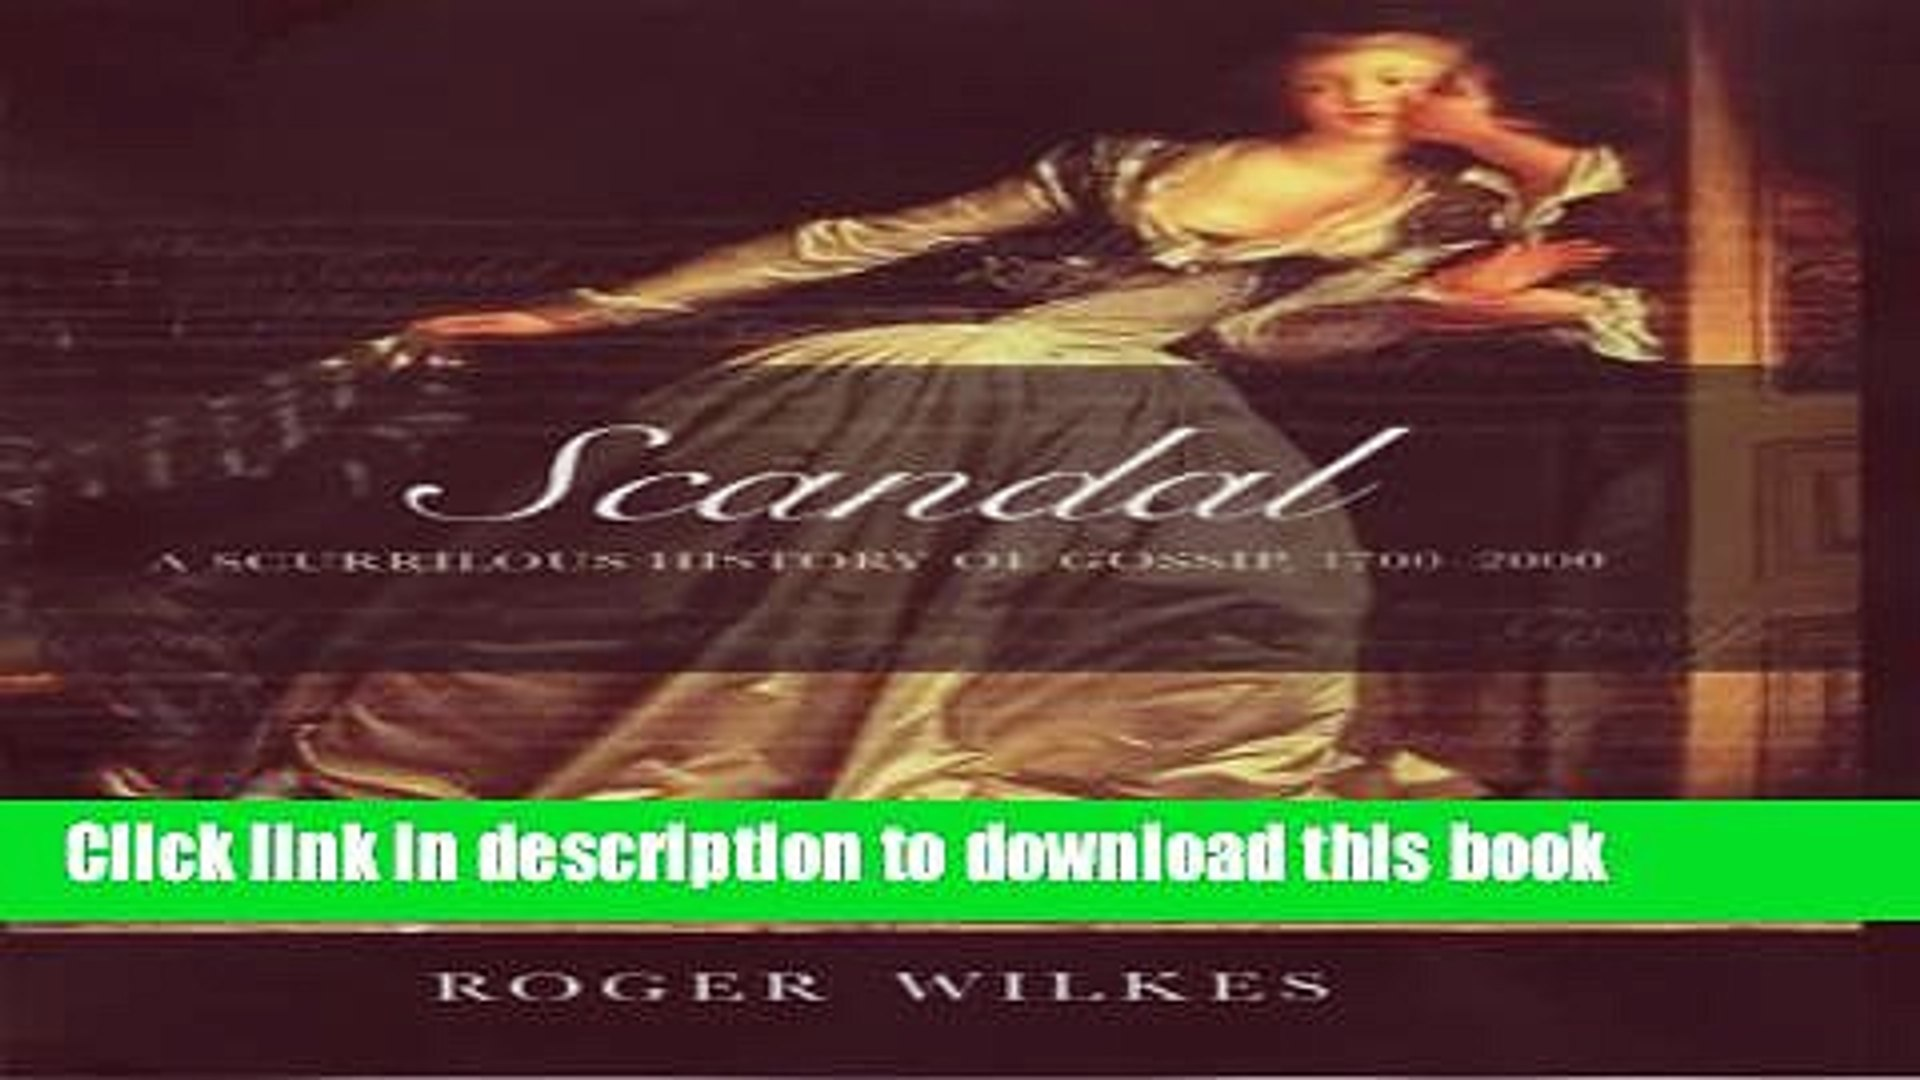 A Scurrilous History of Gossip Scandal! 1700-2000,Roger Wilkes